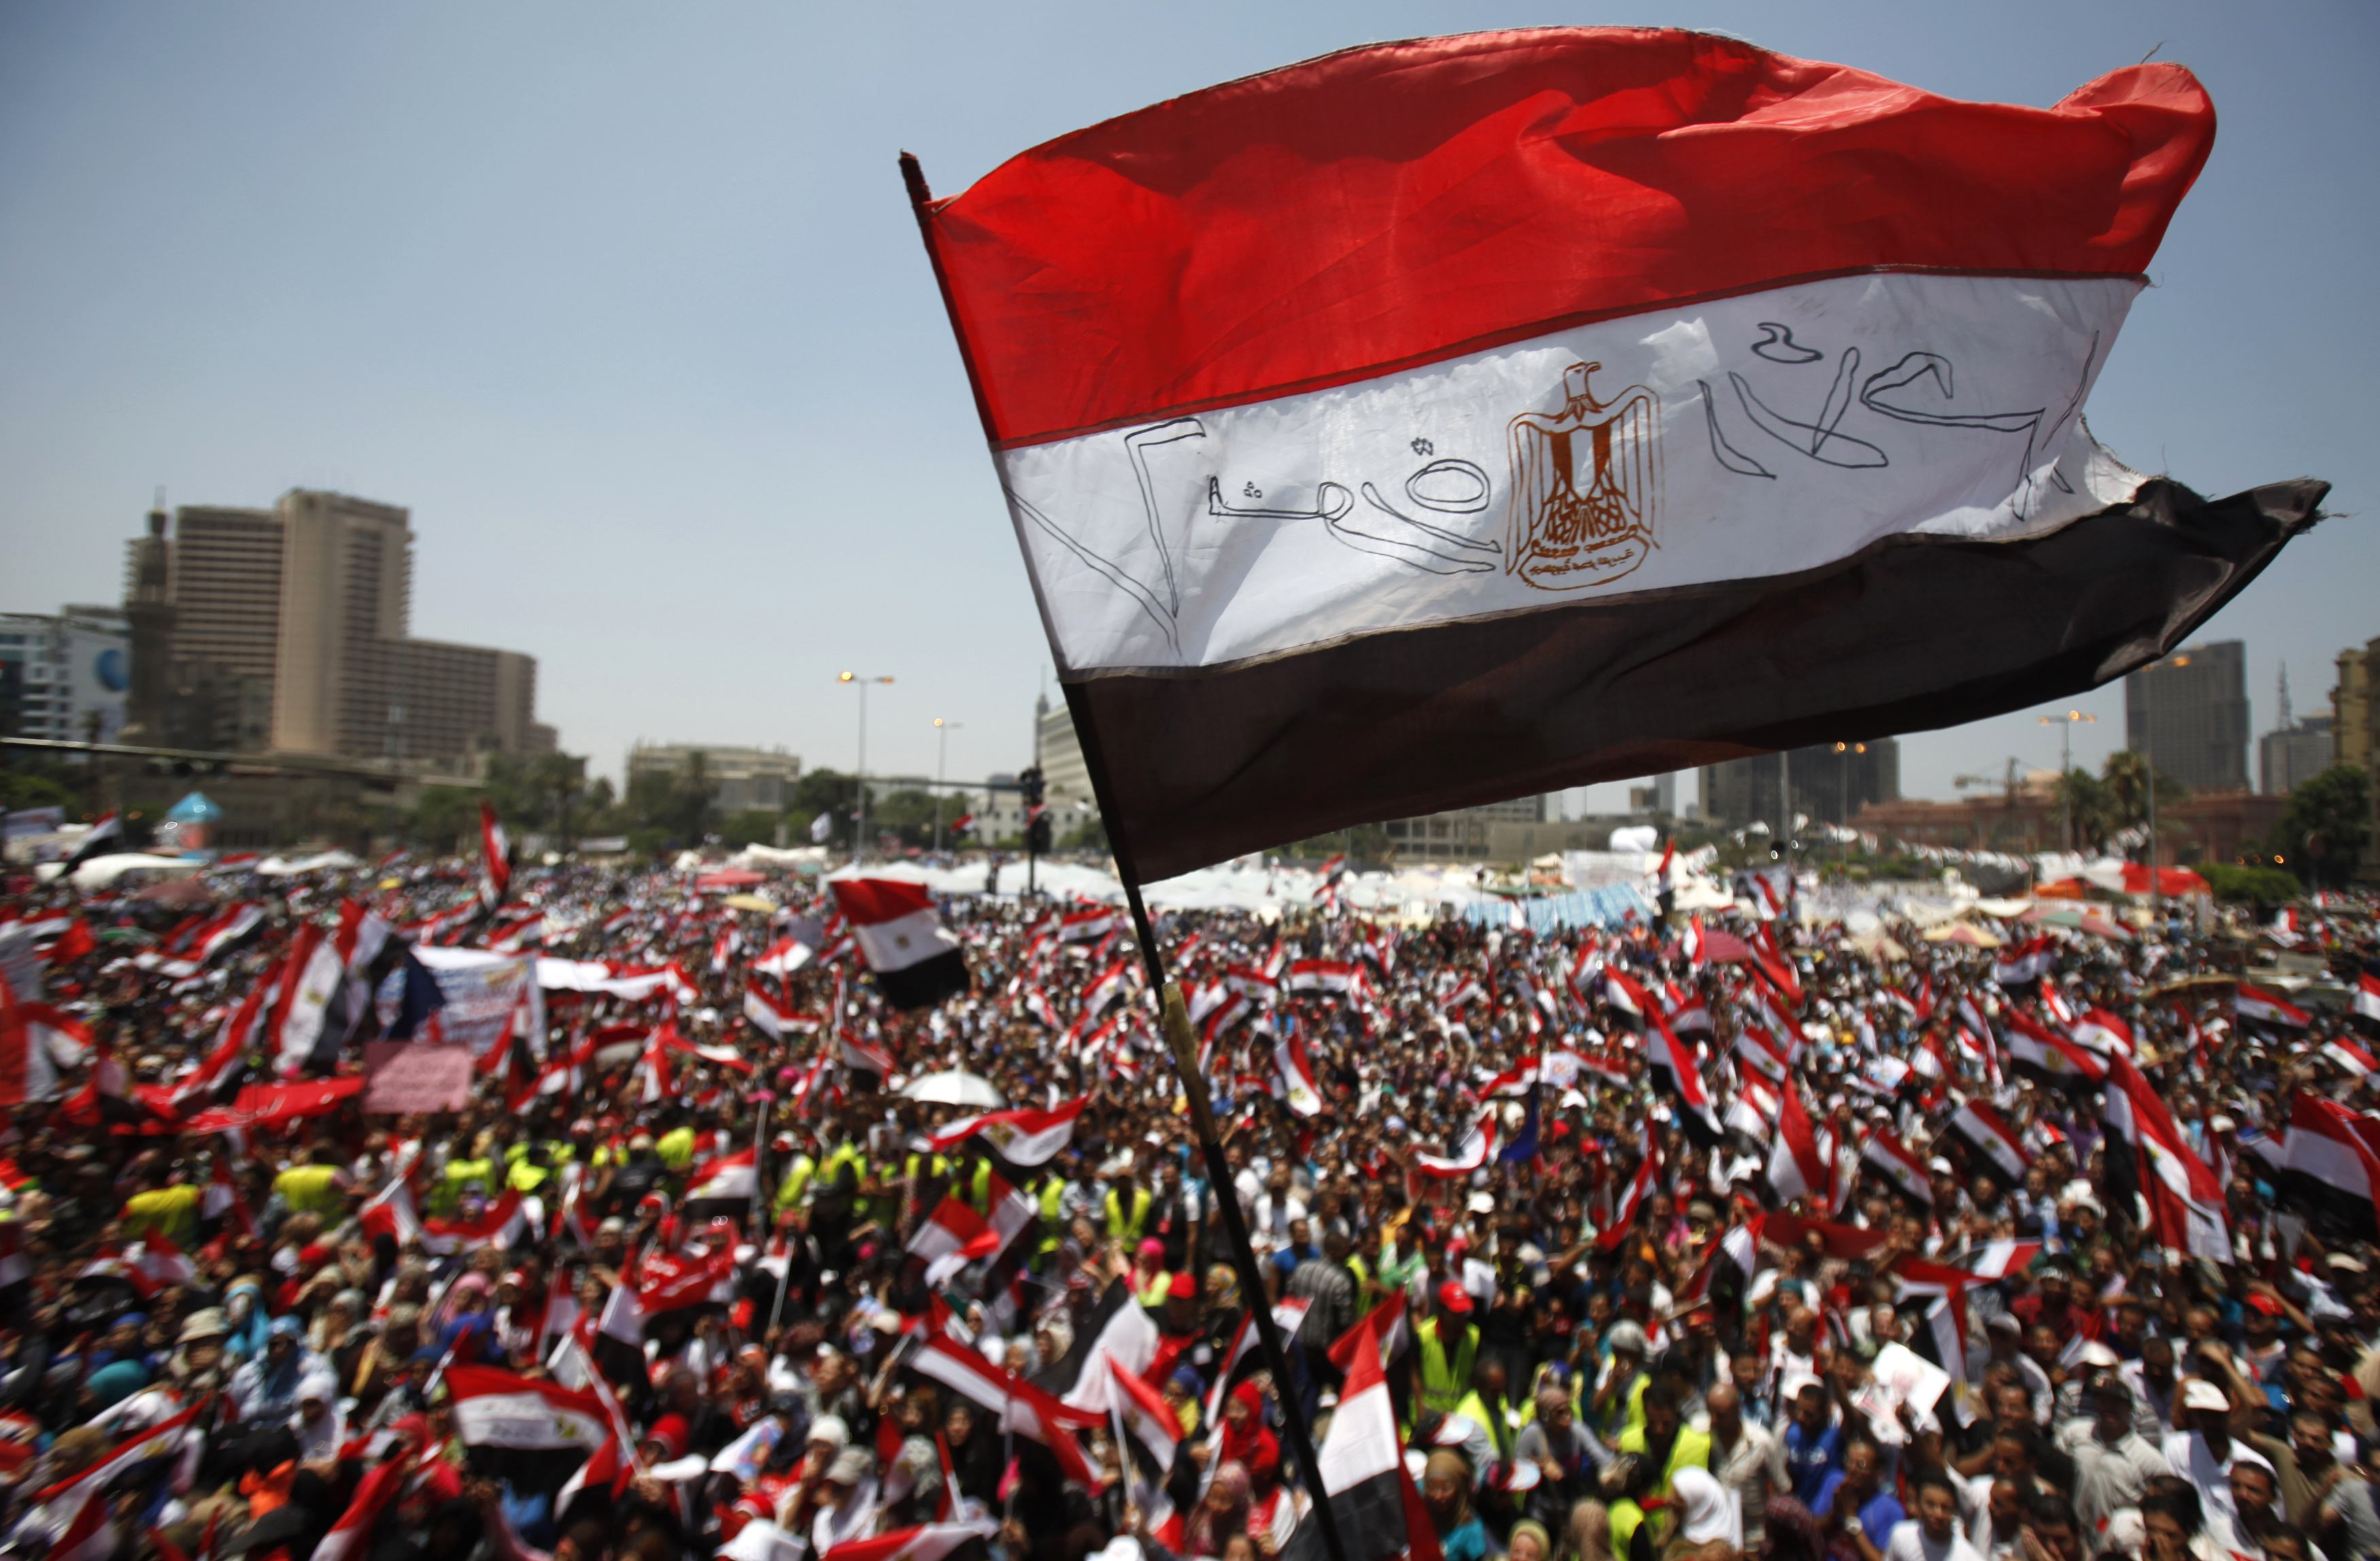 Gallery: Anti-Morsi protest rallies take place in Egypt